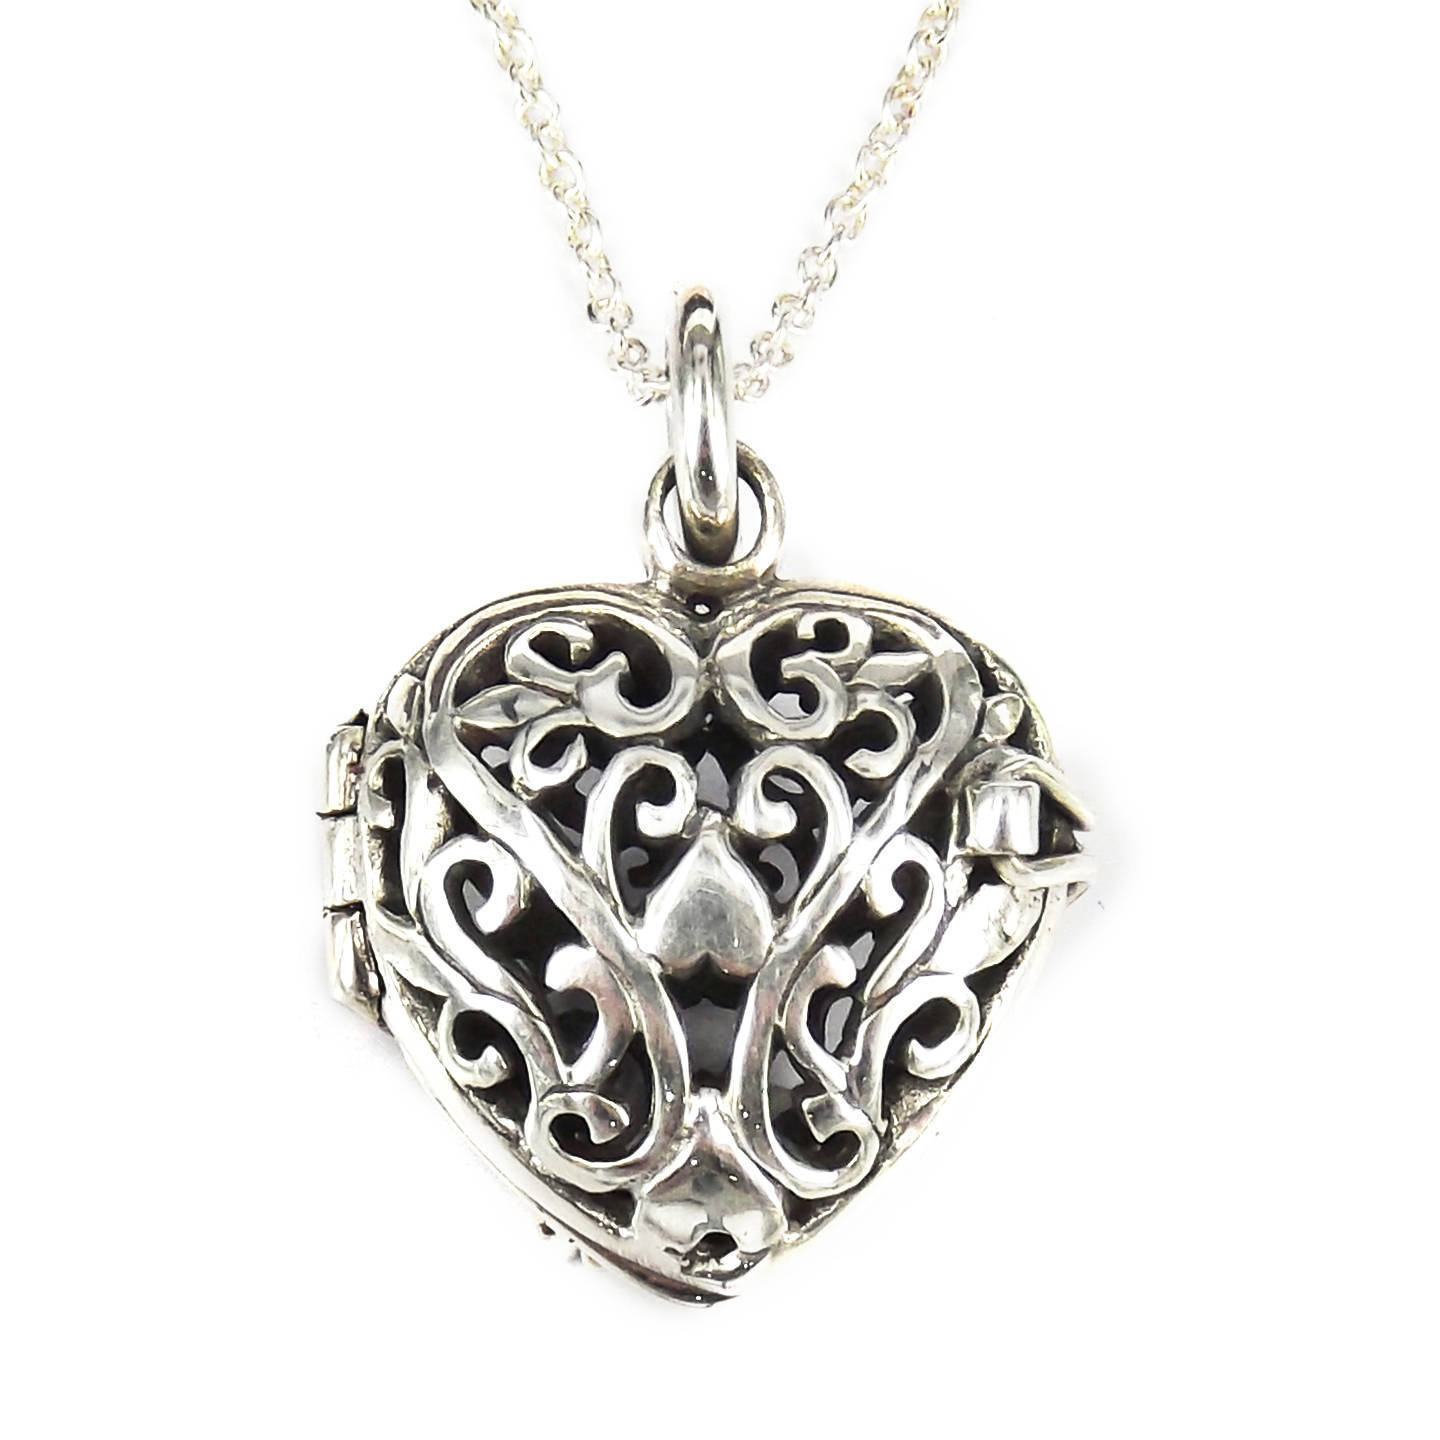 gift pin girlfriend for love heartnecklace necklace valentinesday romantic filigree